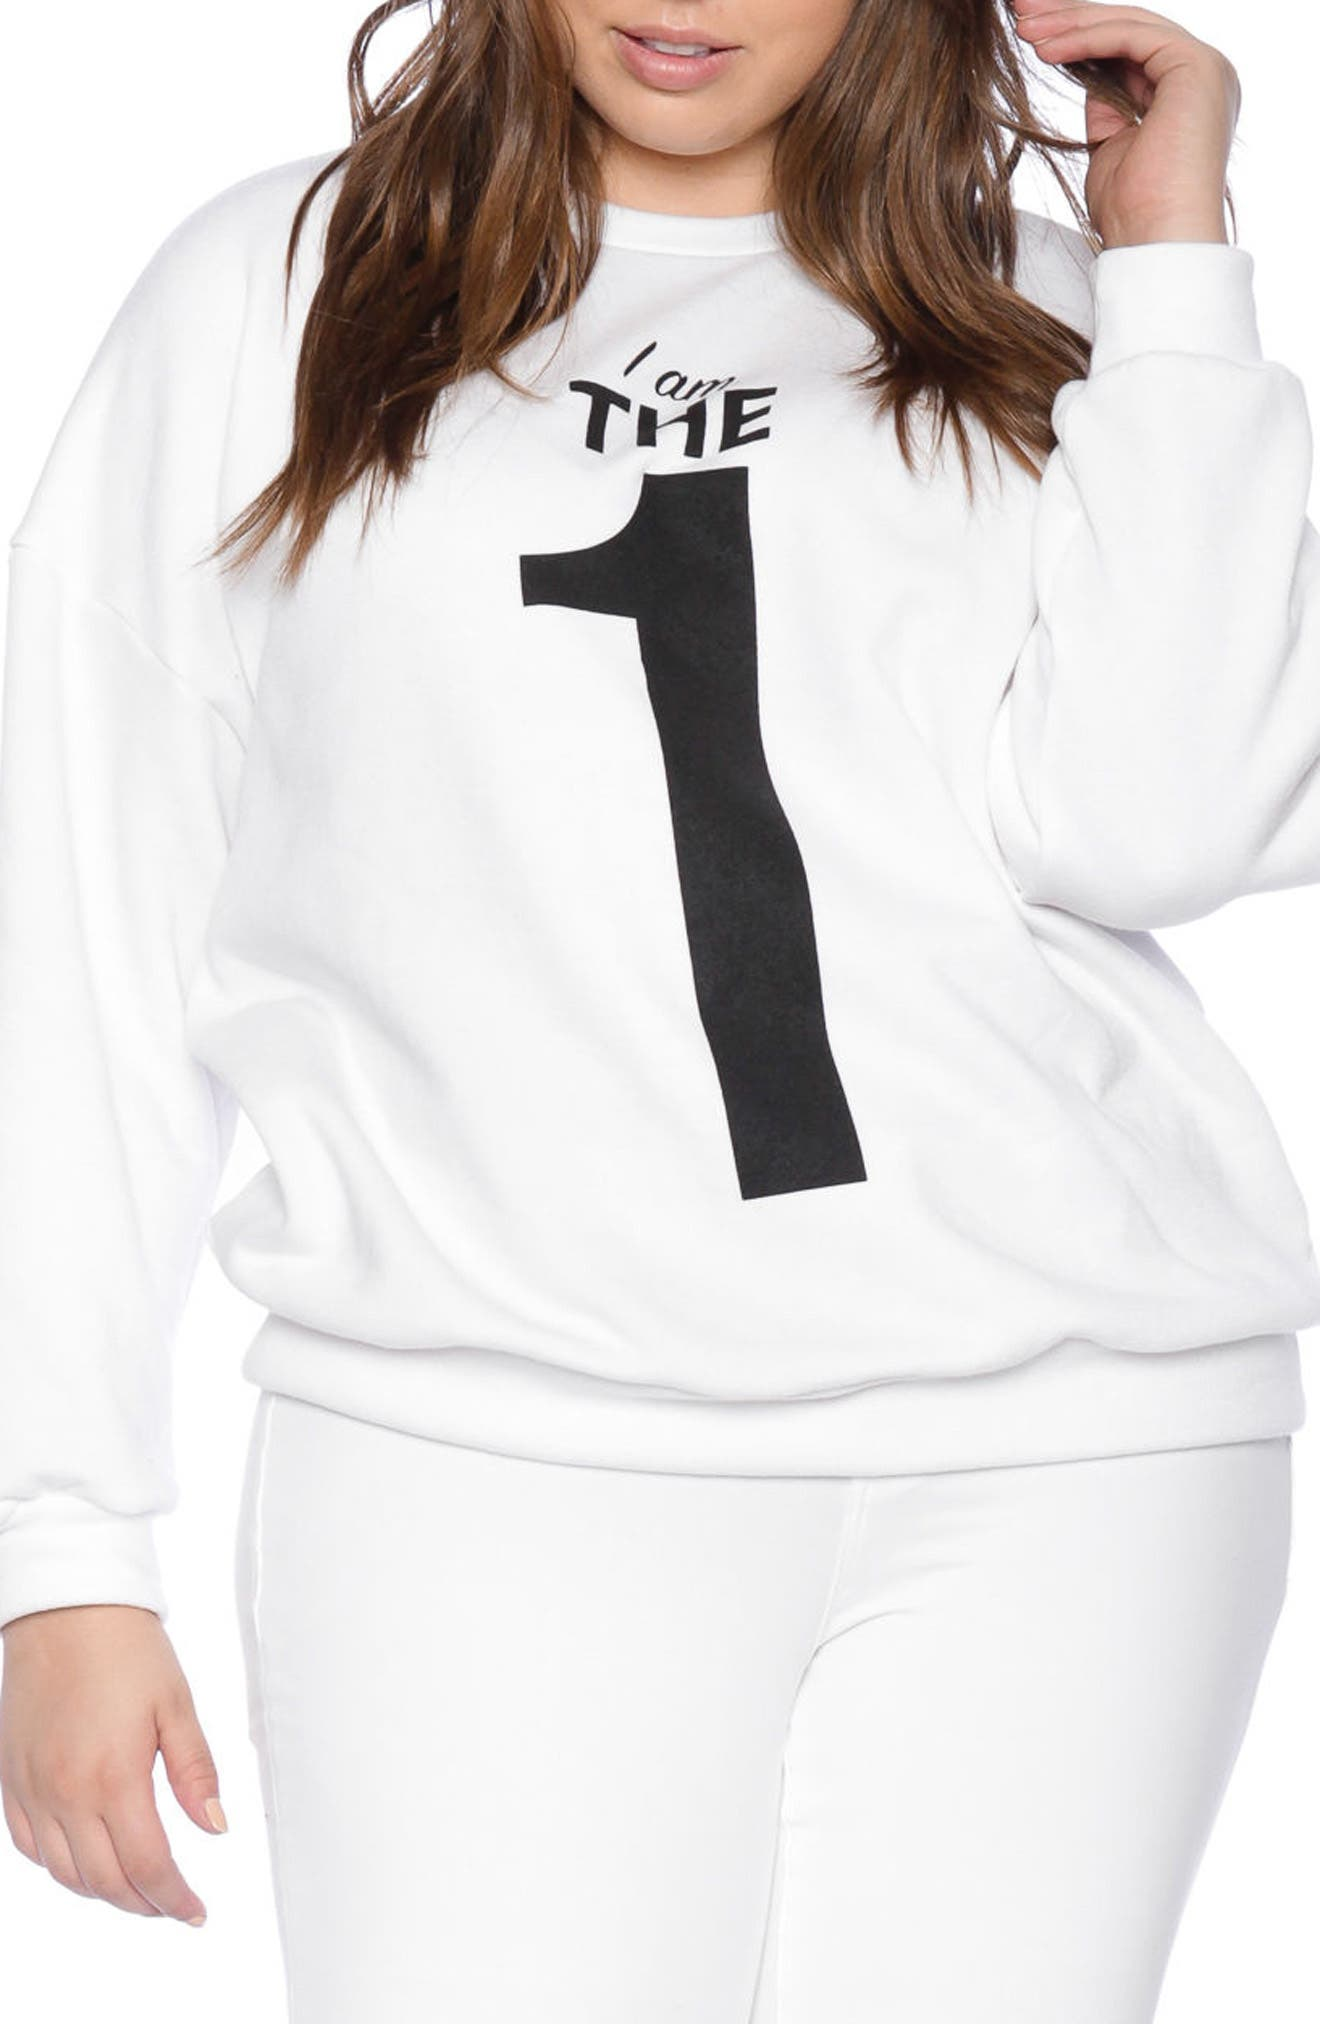 SLINK JEANS I Am The One Oversize Sweatshirt in White